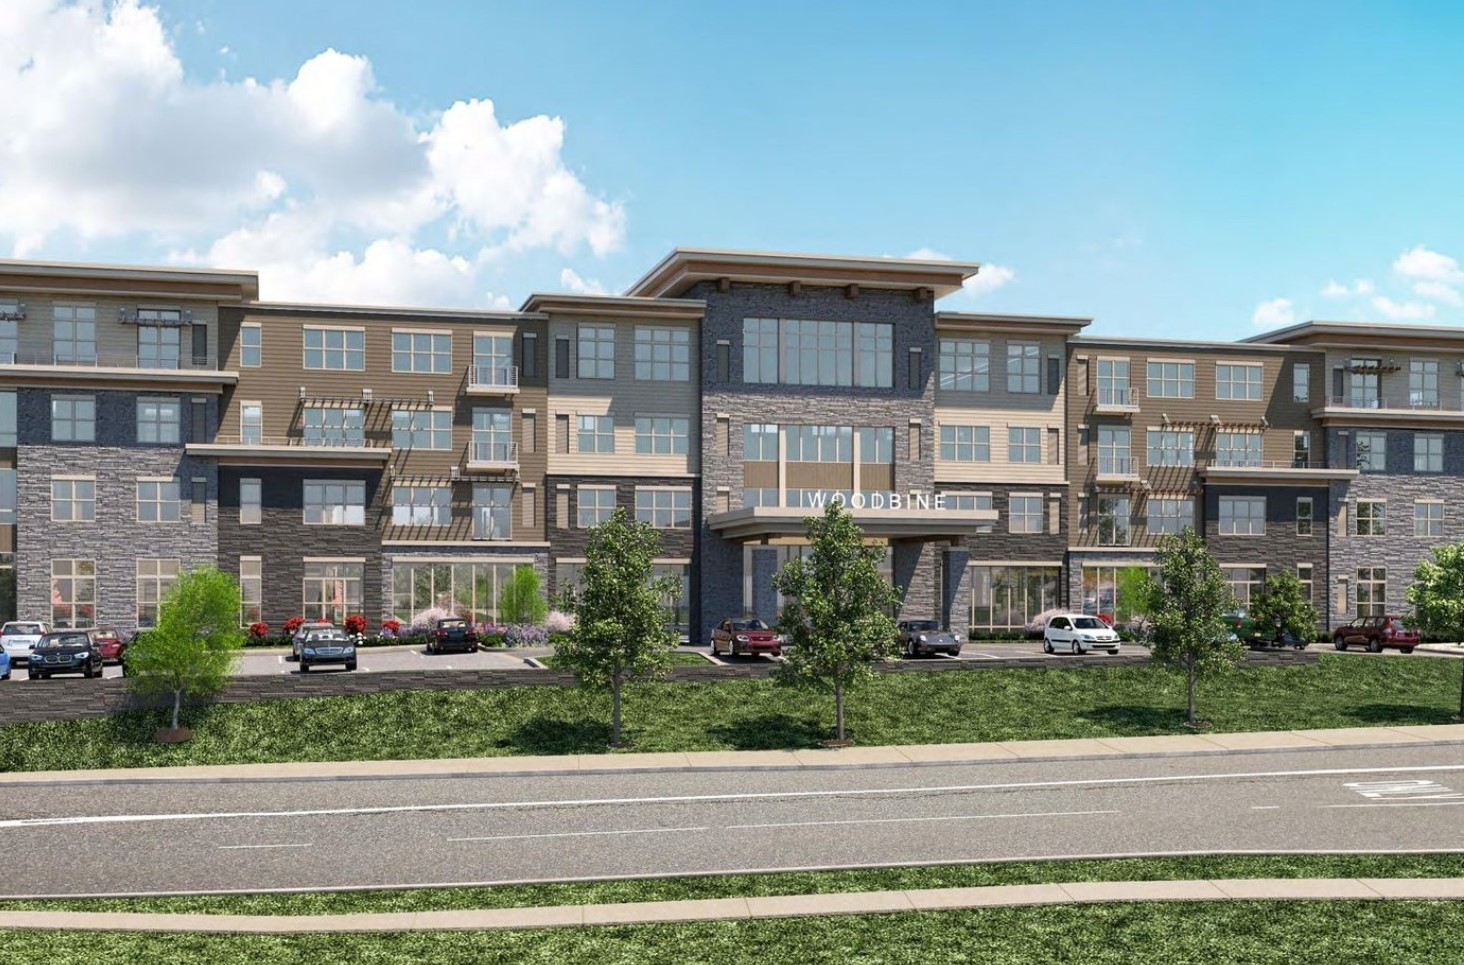 Malvern's Eli Kahn to Build Apartments on Former Archdiocese Land in Downingtown